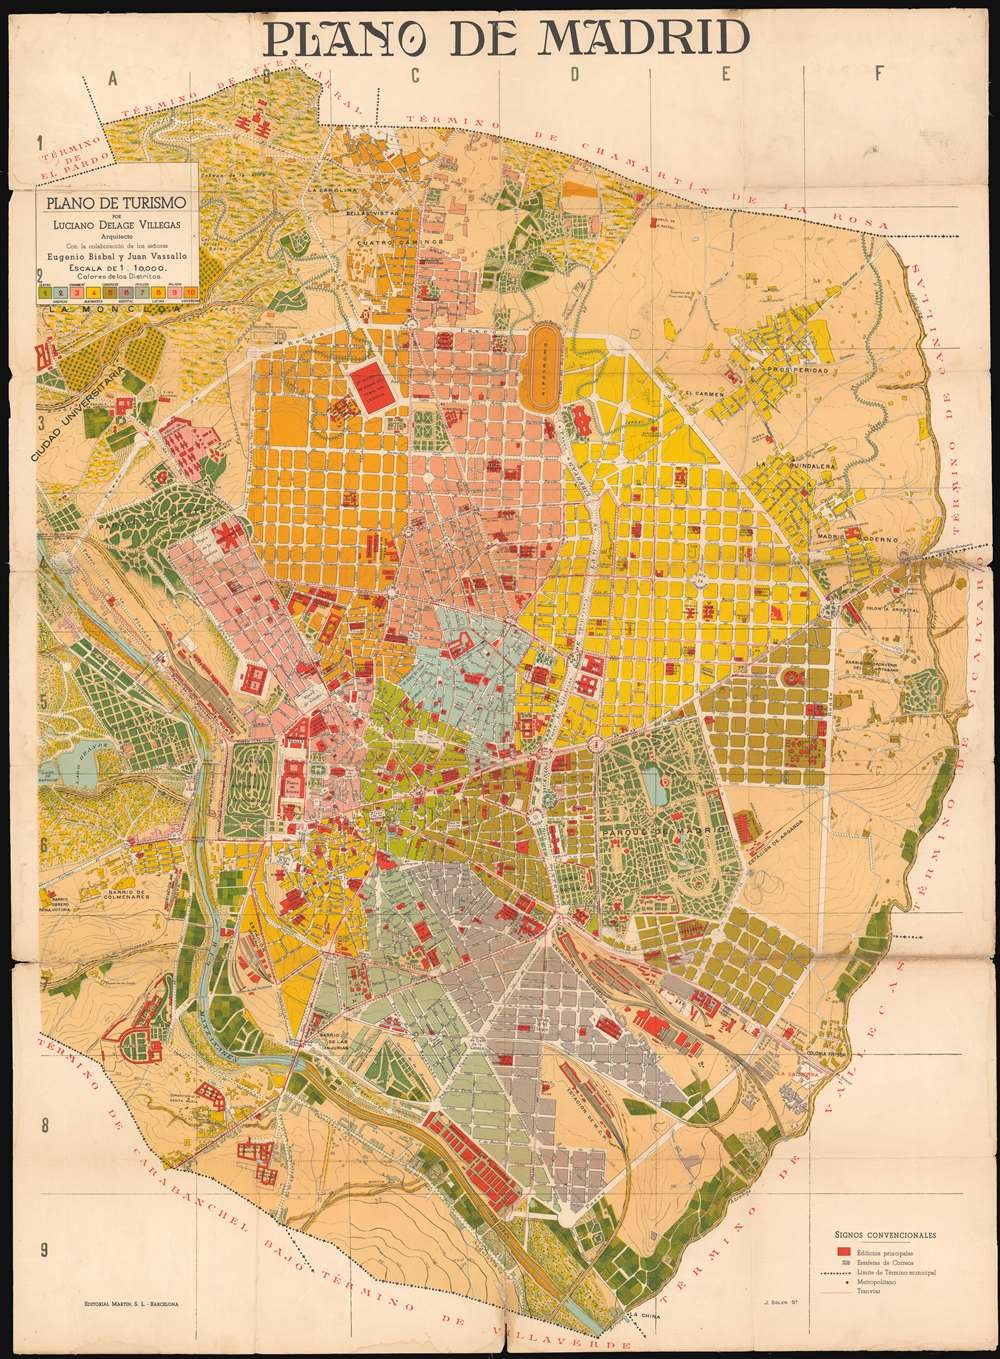 1910 Bisbal and Vassallo City Plan or Map of Madrid, Spain